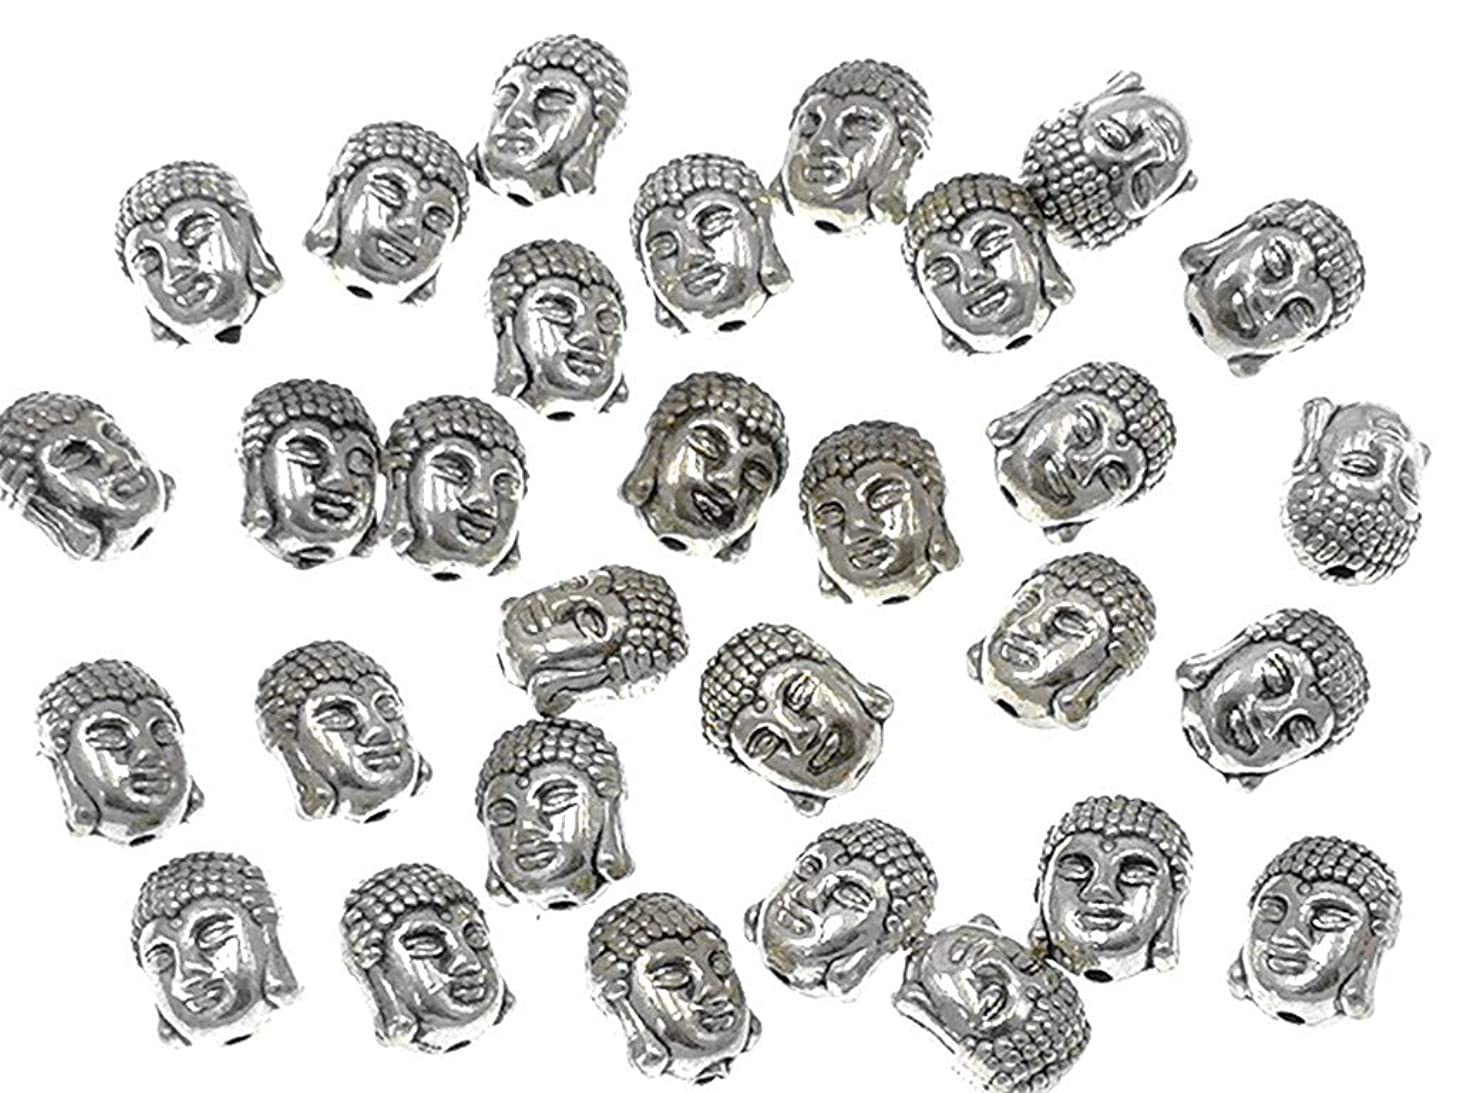 30pcs Alloy Buddha Tathagata Head Bead Spacer Charm Pendant for DIY Necklace Bracelt Jewelry Making Findings(Tibetan Silver Tone)